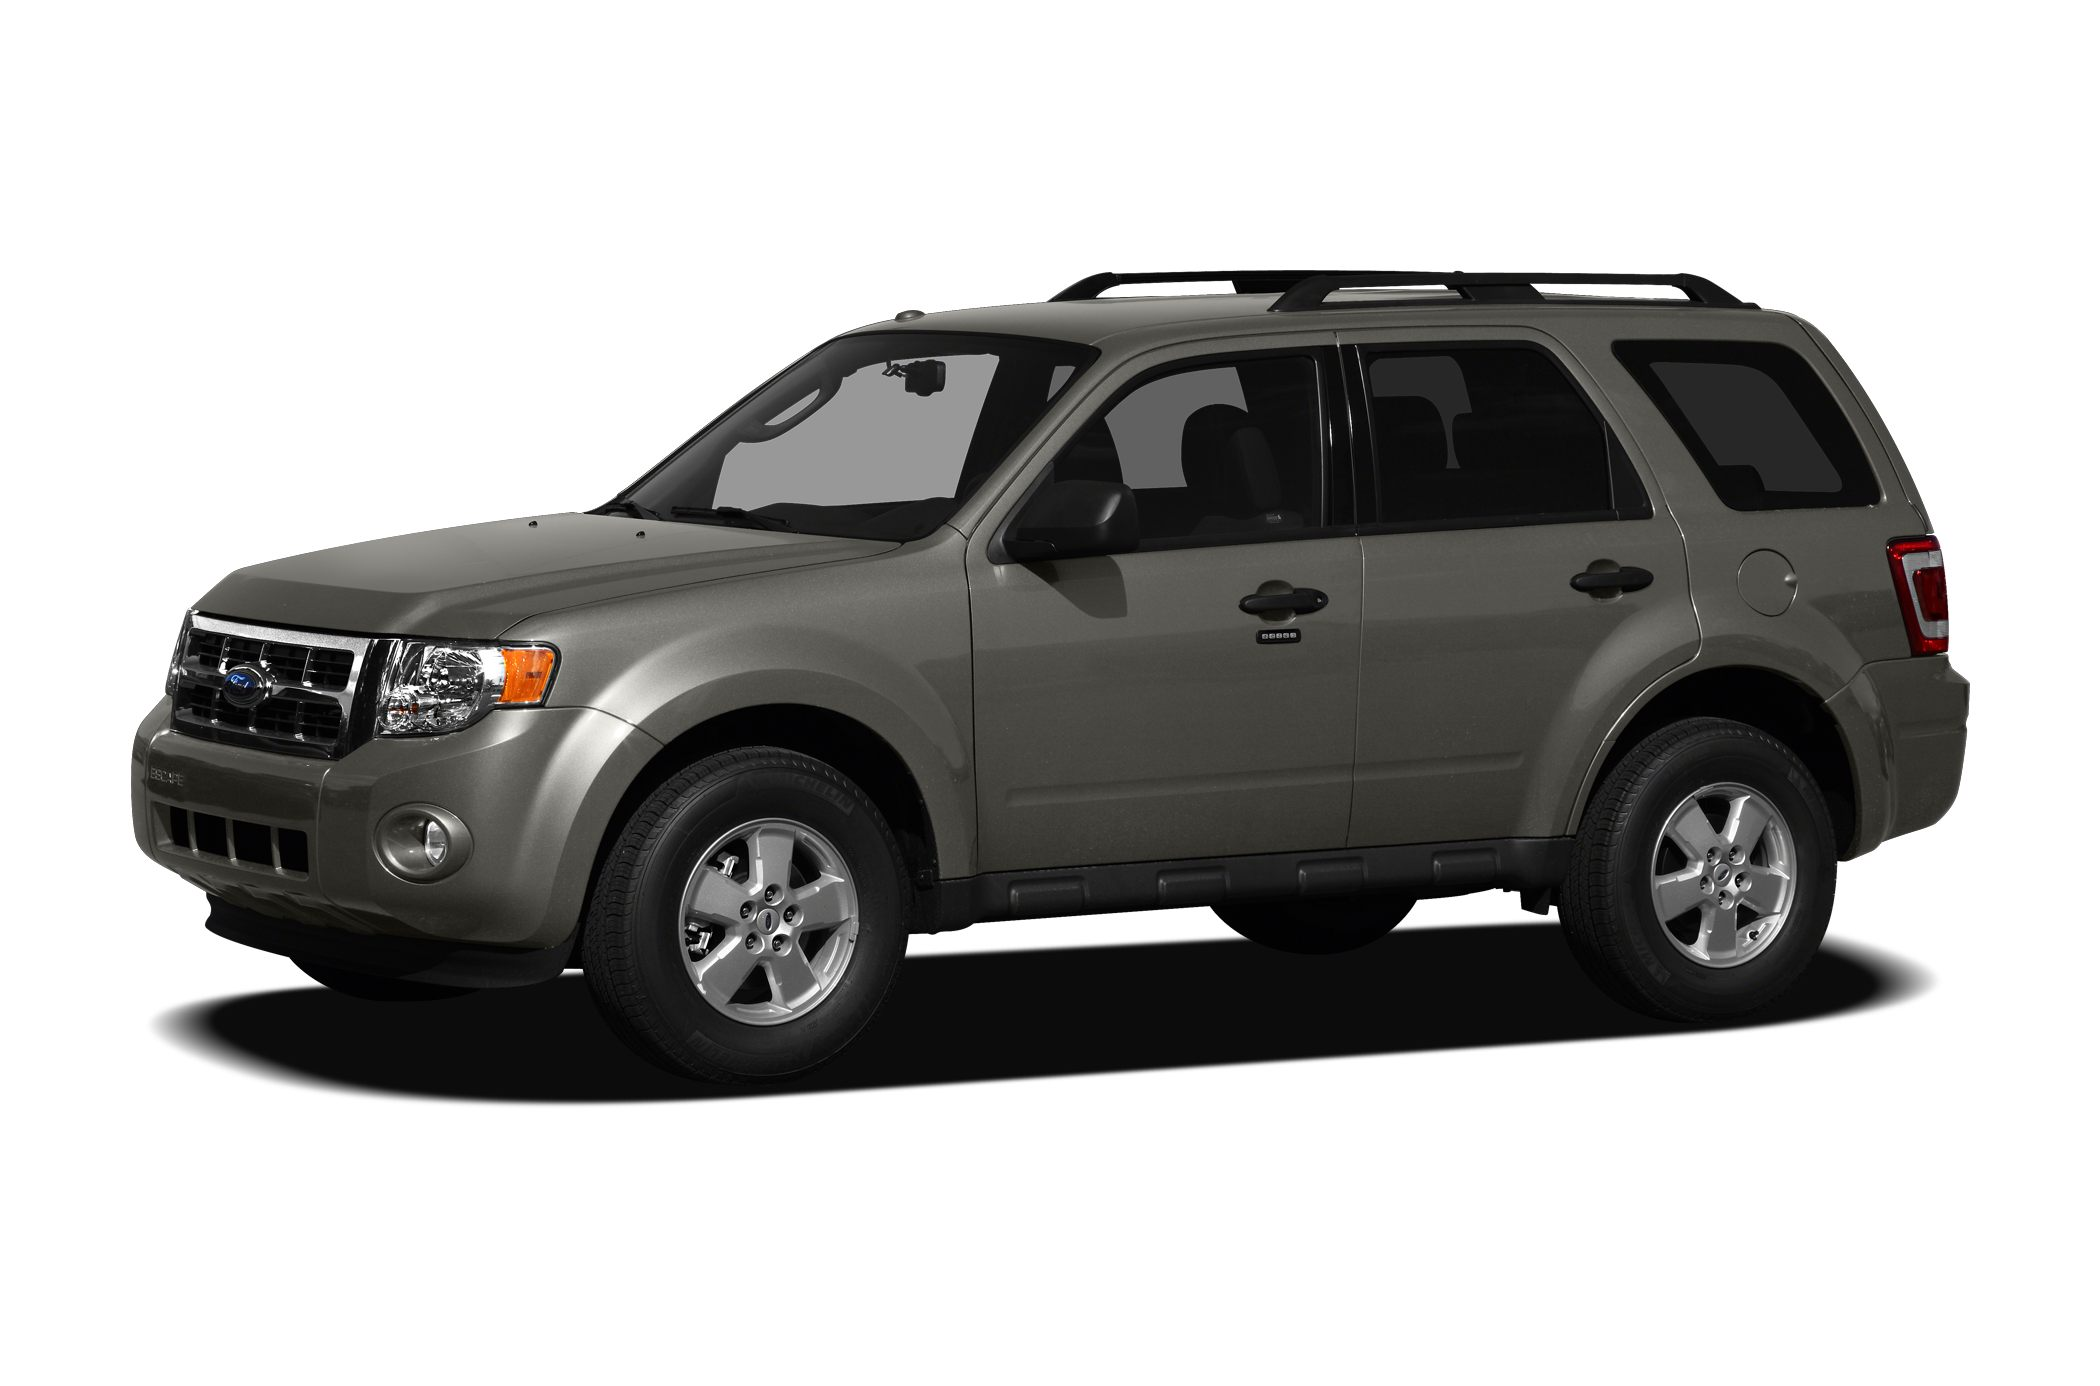 2012 Ford Escape XLT Auto Check 1 Owner and Ford Certified Pre-Owned Dont let the miles fool you